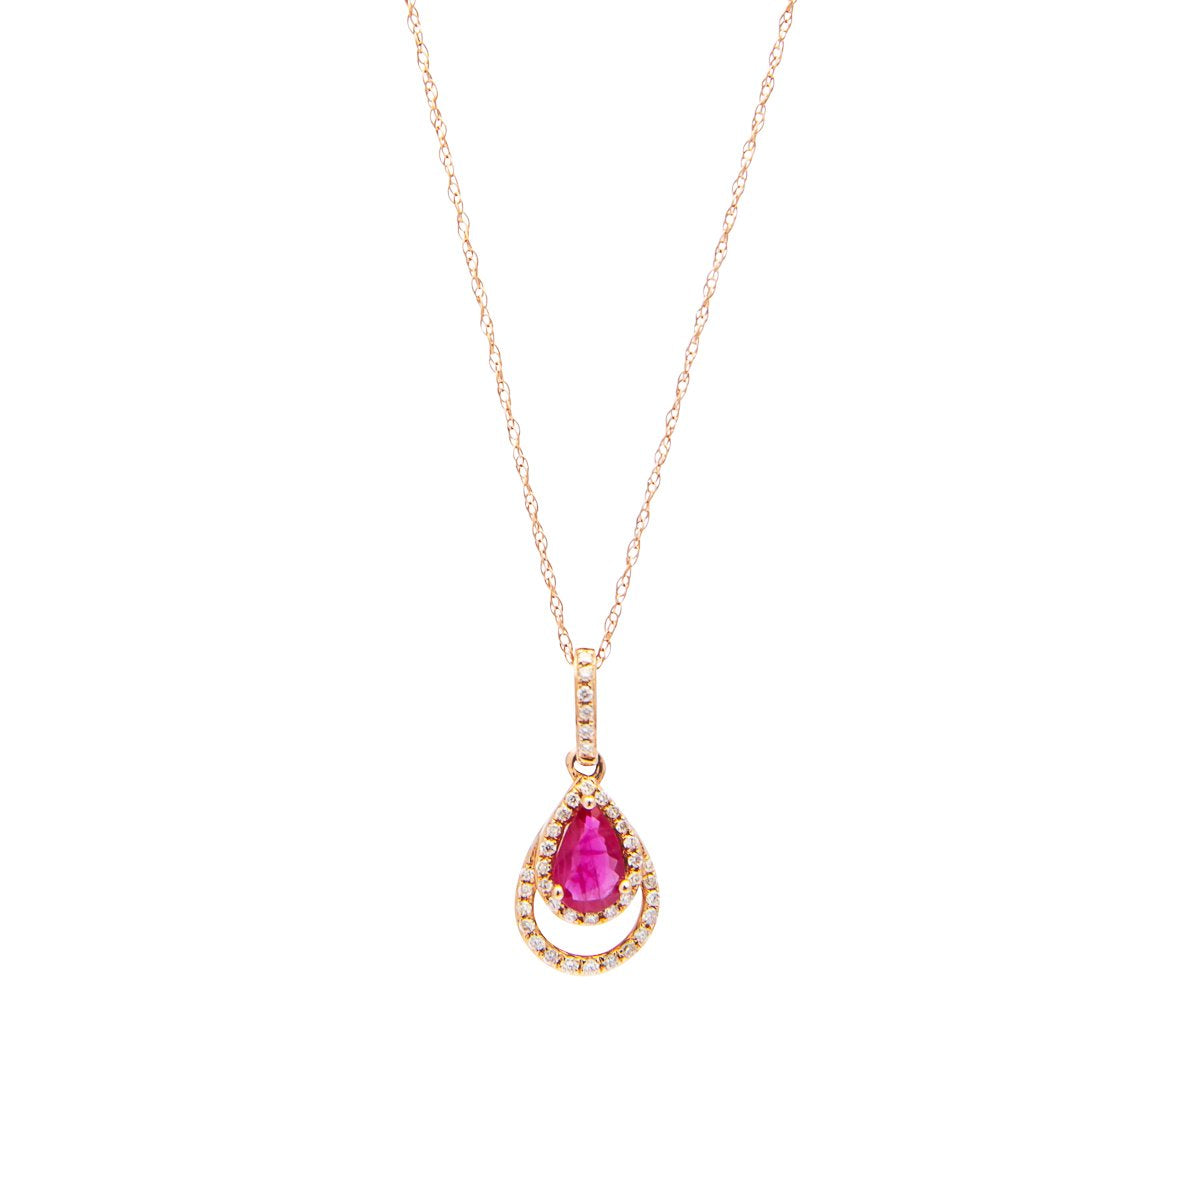 Sabel Collection 14K Rose Gold Pear Shape Ruby and Diamond Pendant